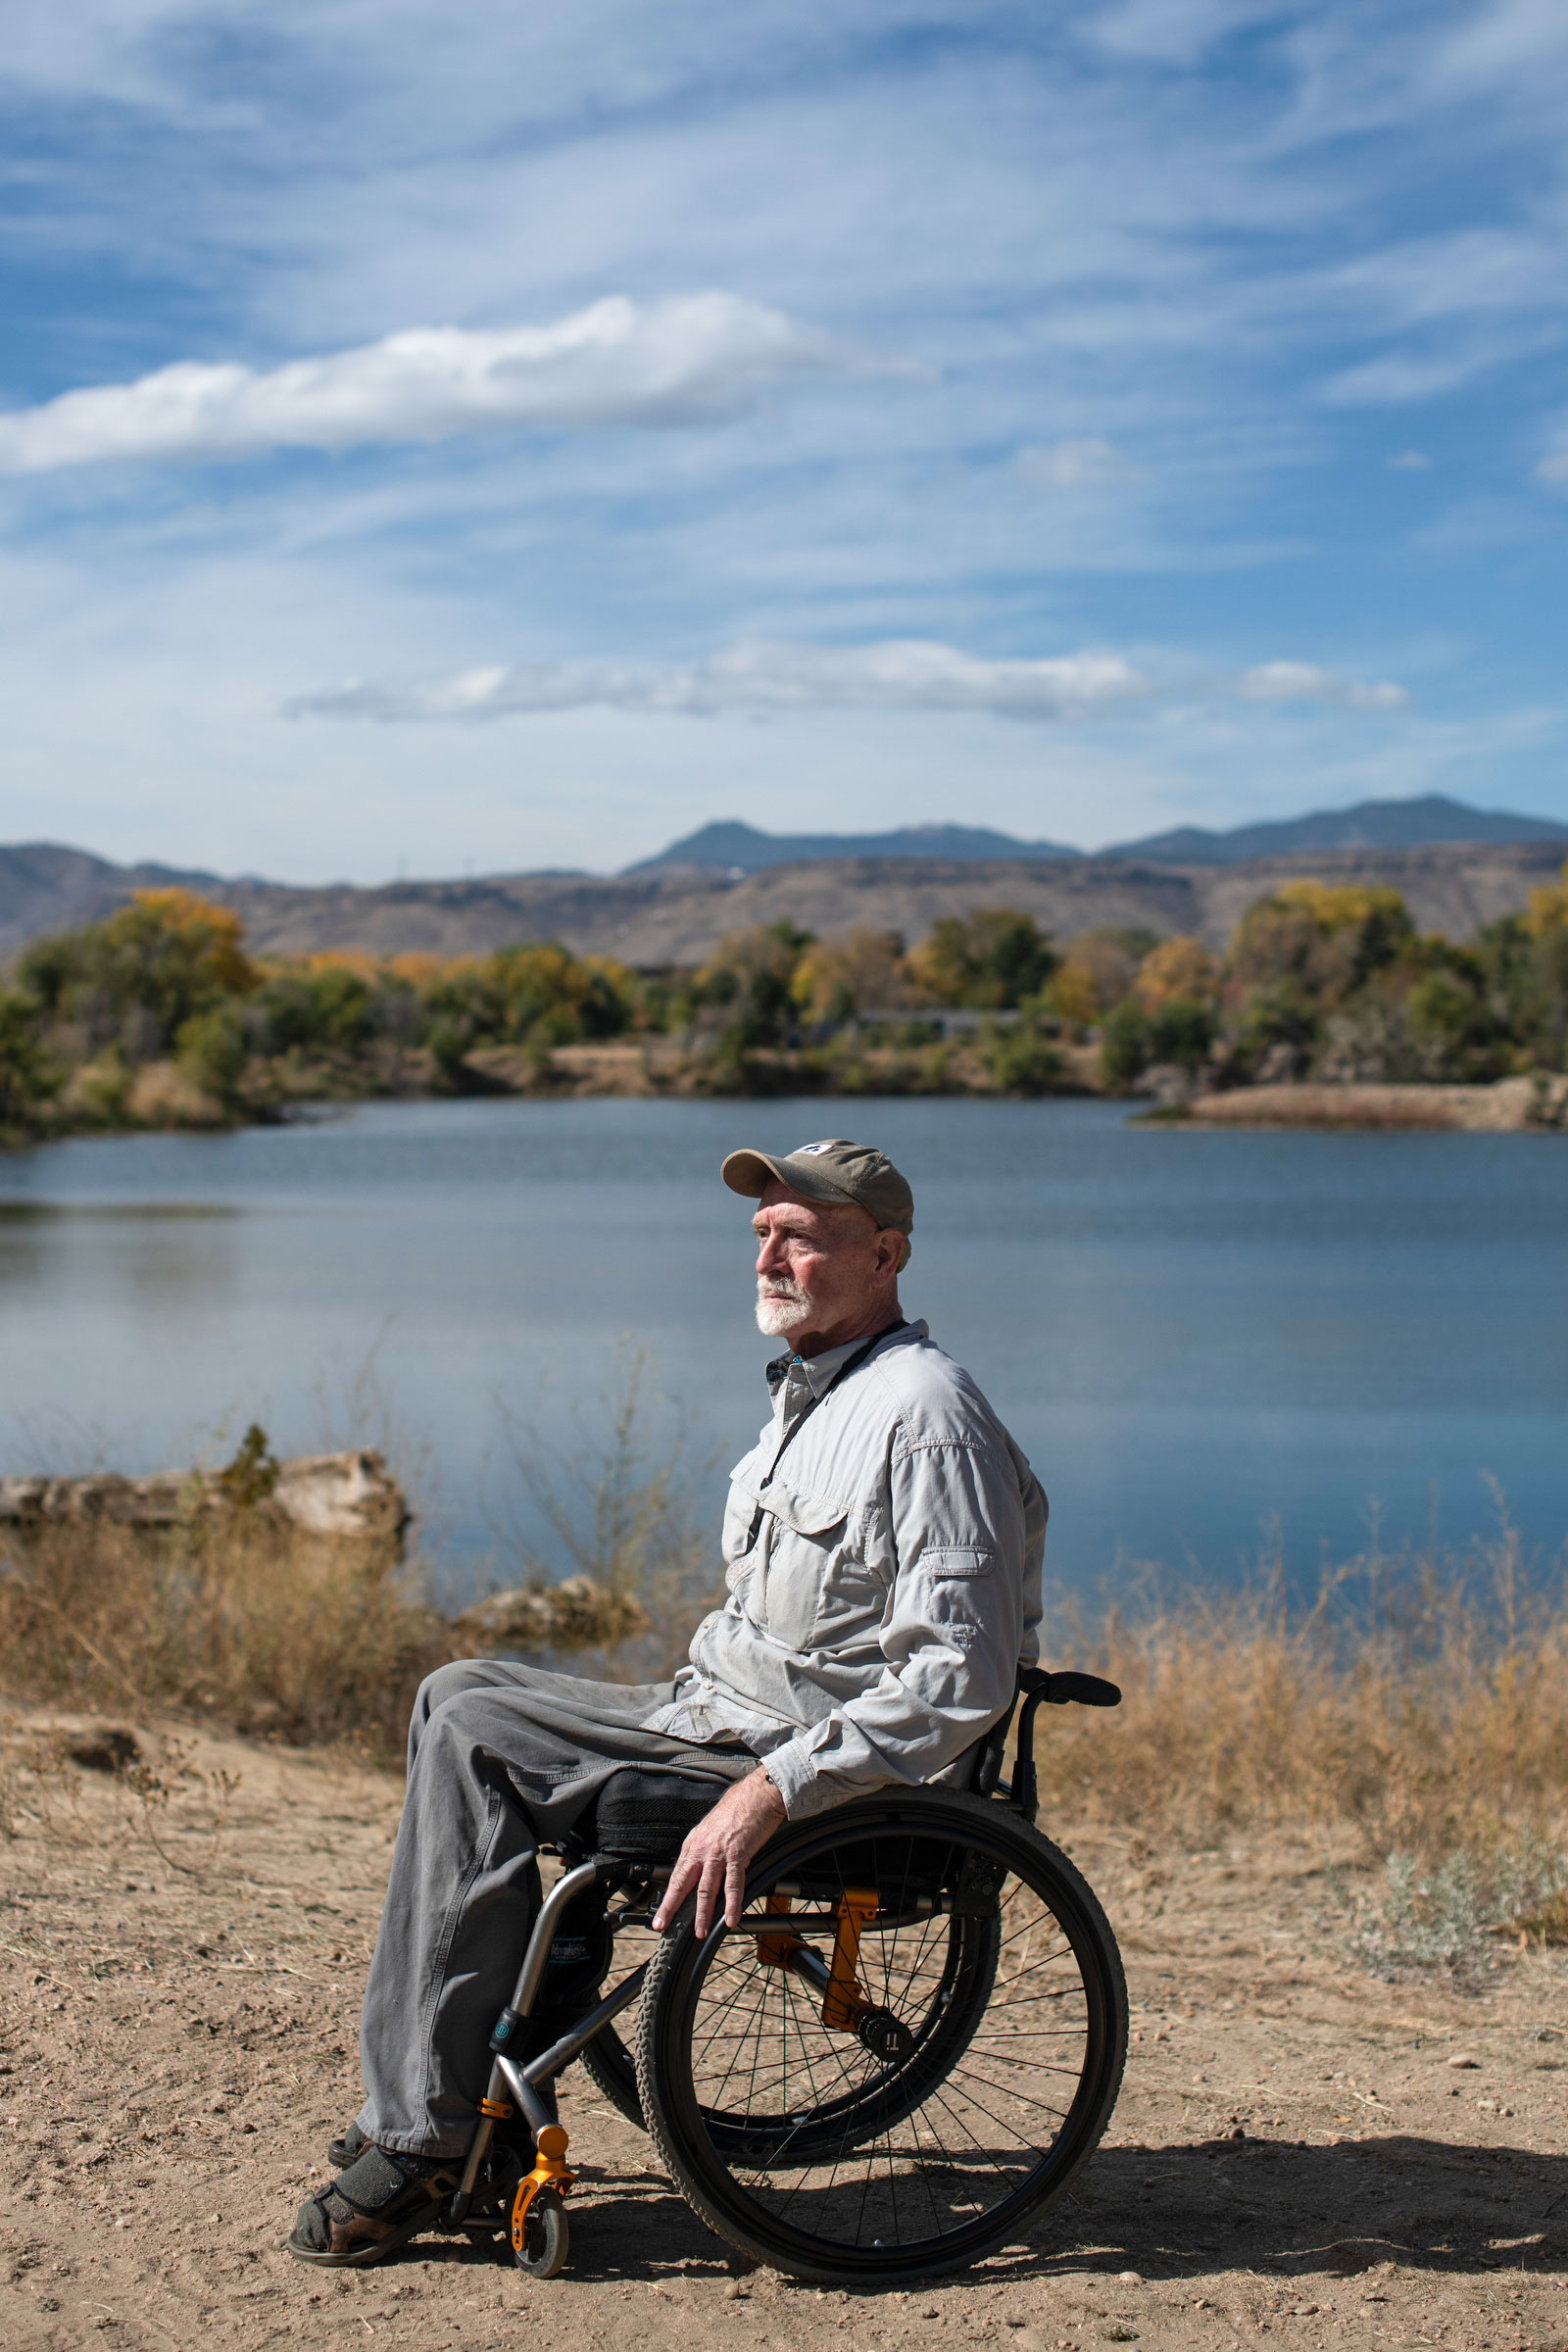 """Roark started Birding Without Barriers to help people with mobility challenges get out and enjoy nature. """"You don't have to give up the passions in your life just because you have trouble getting around,"""" he says. Rachel Woolf"""